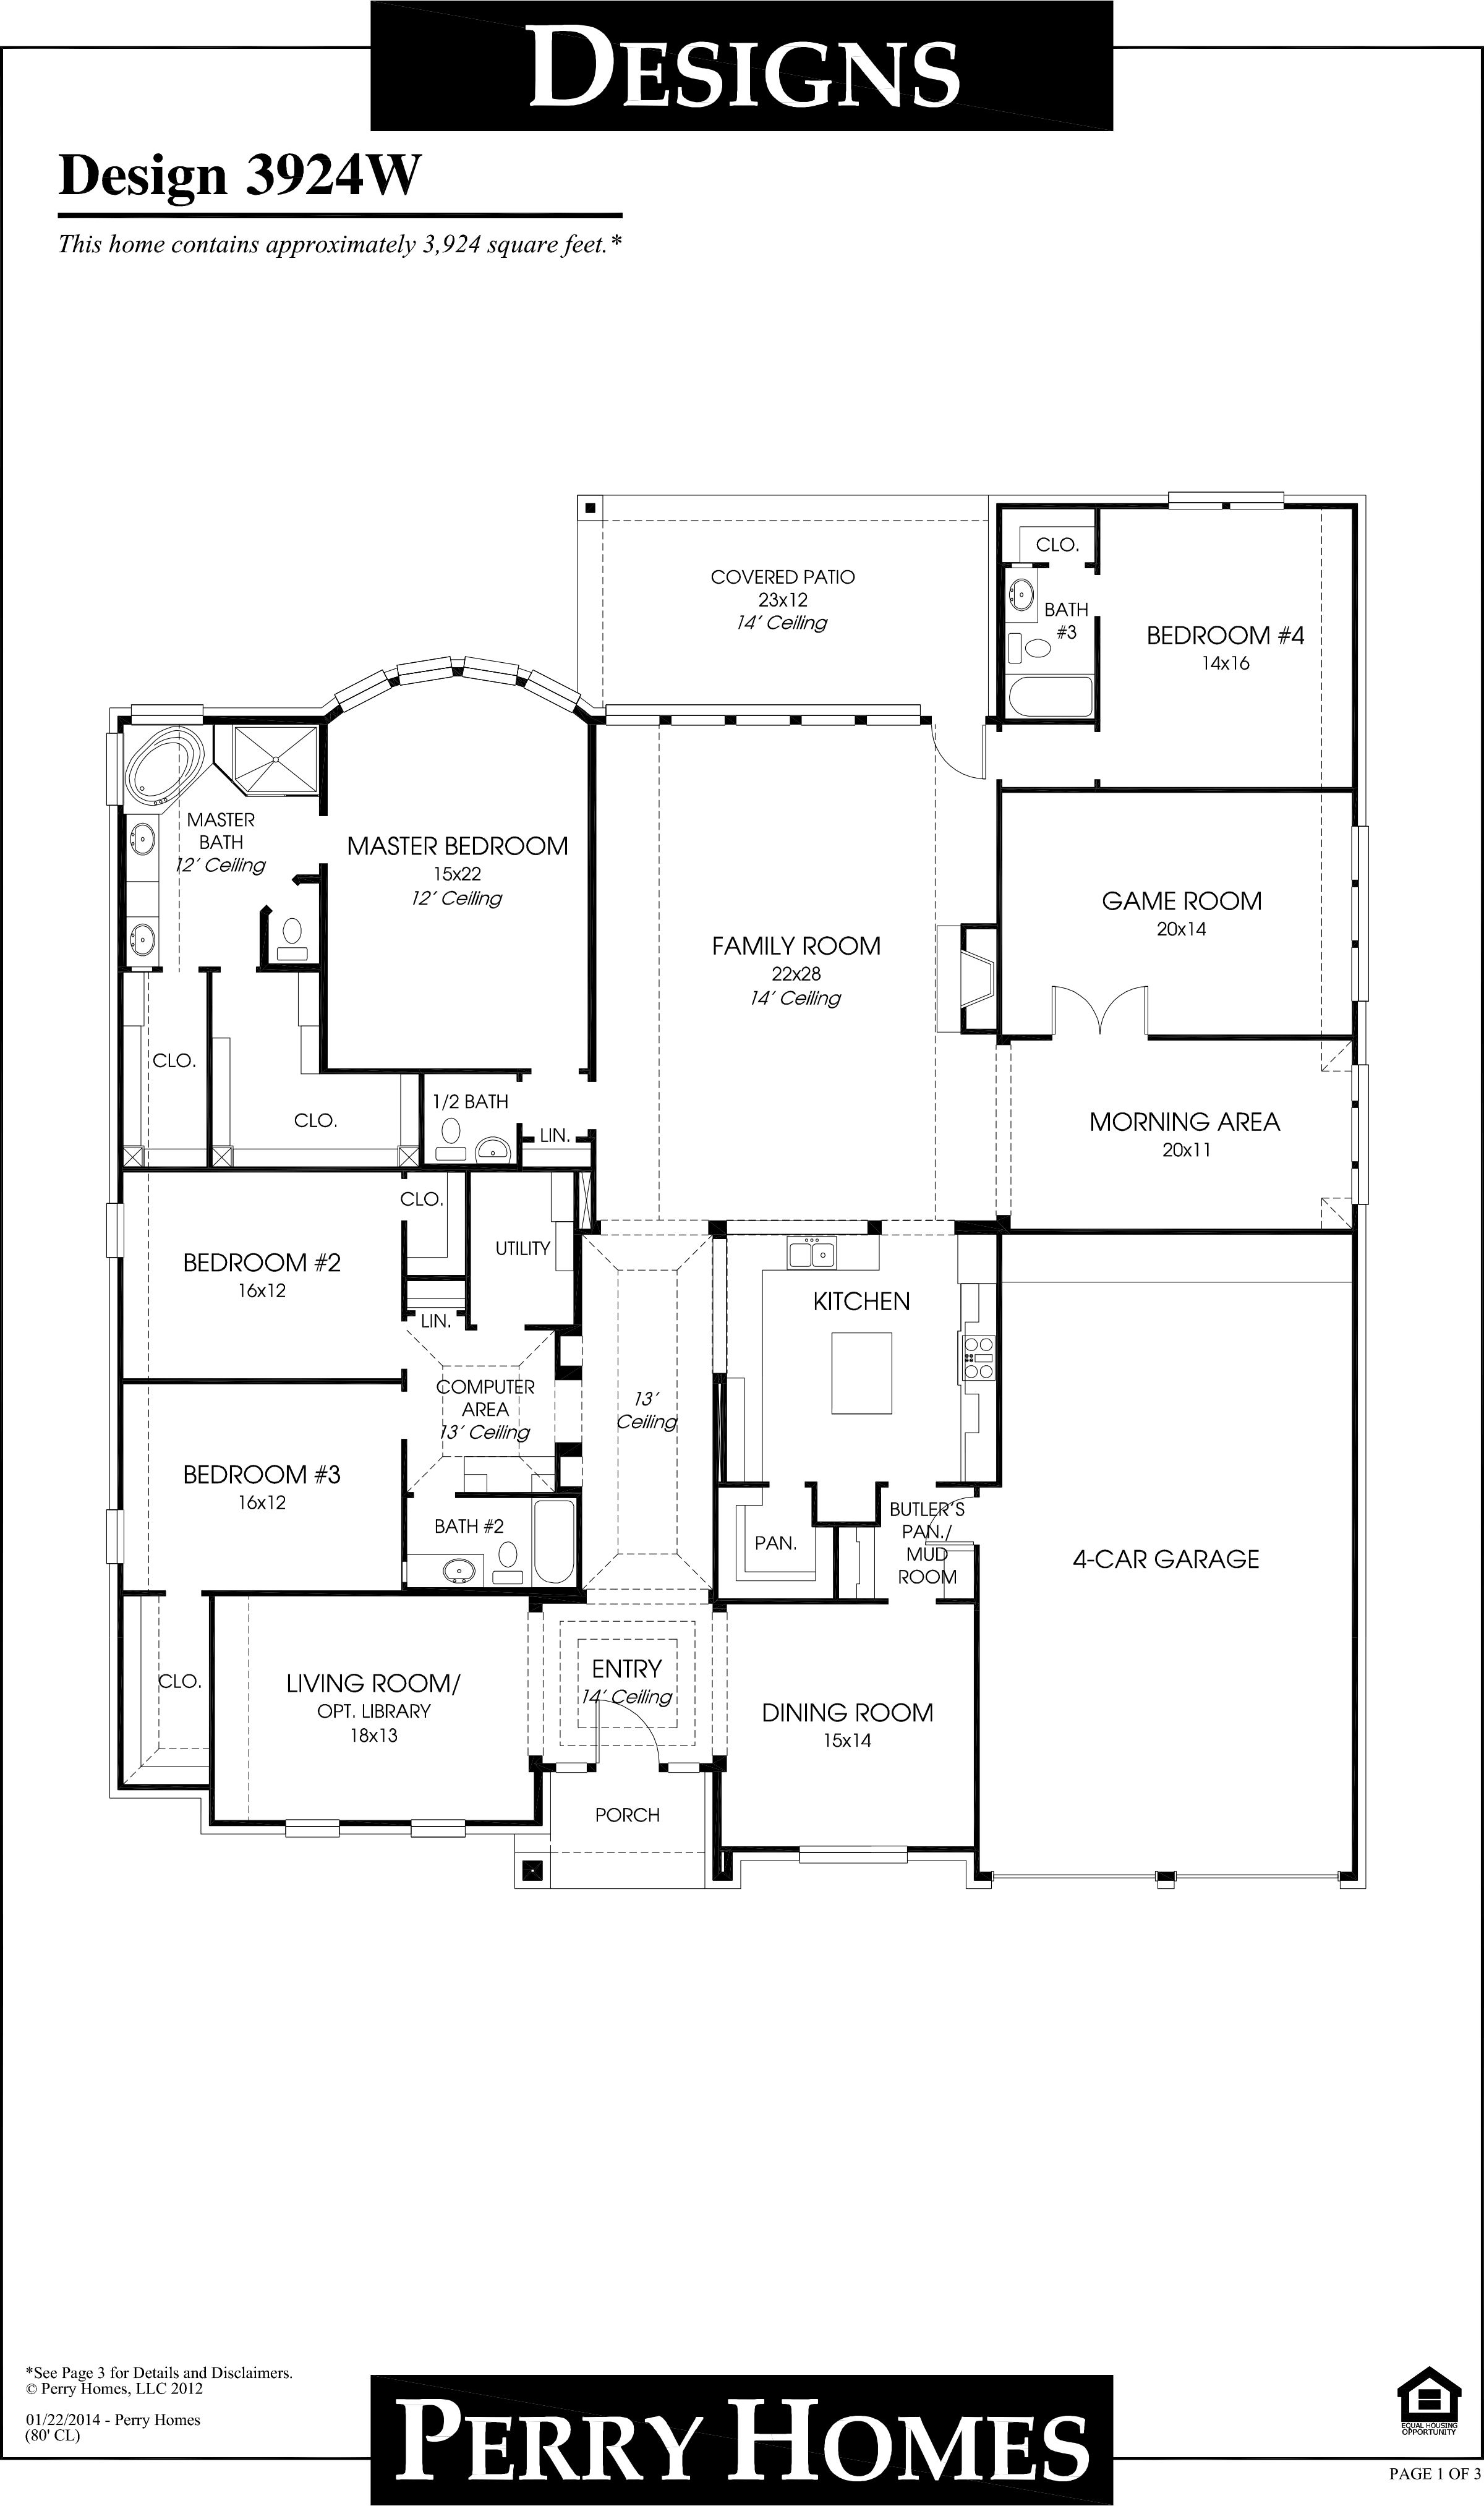 Home | Pinterest | House, House plans design and Plan design